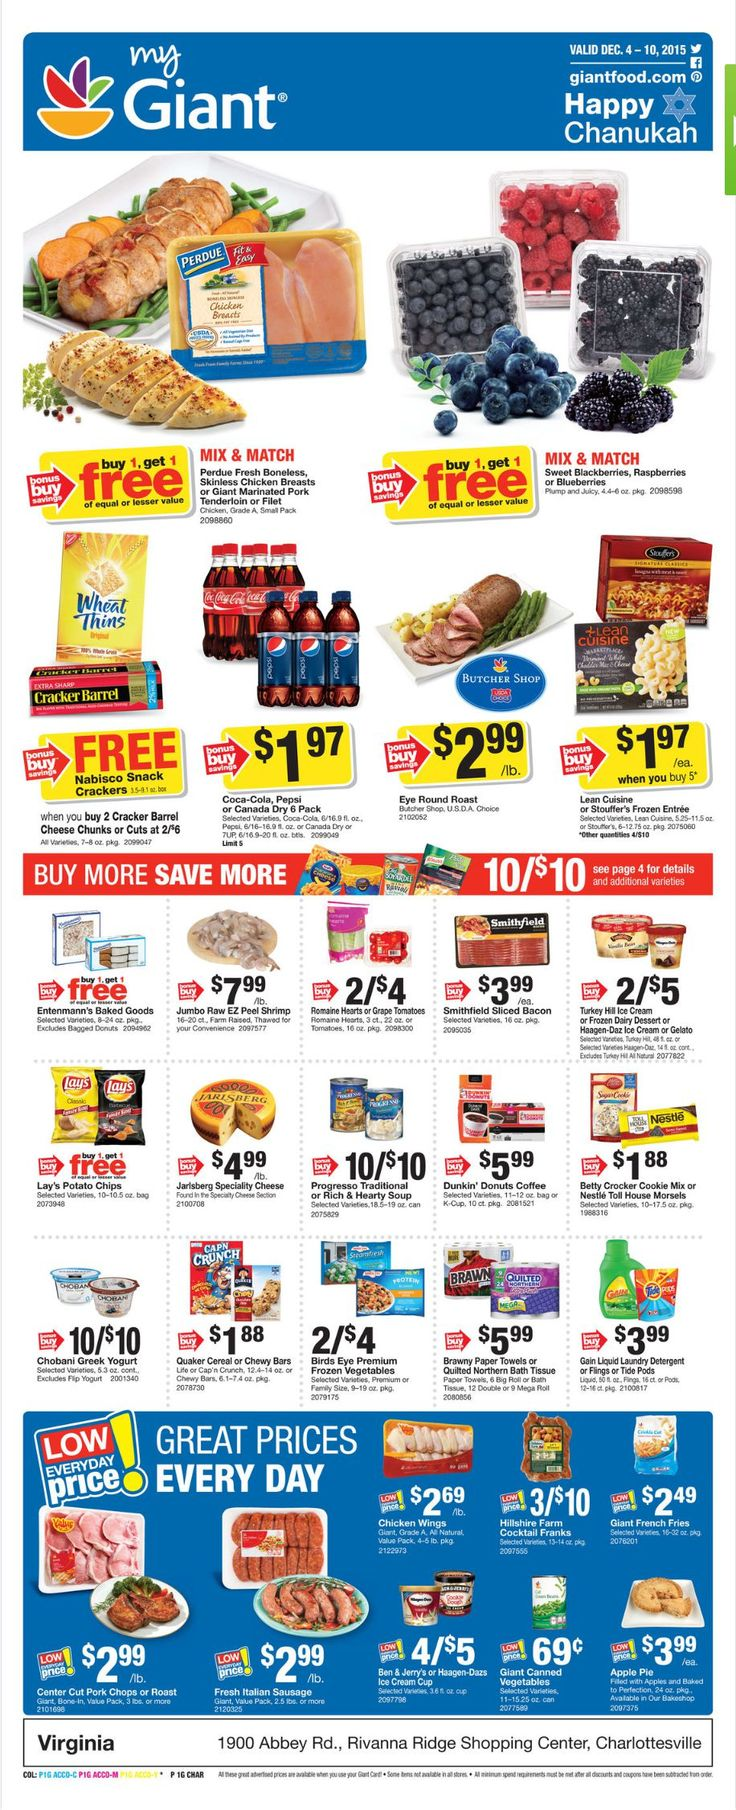 Giant Food Weekly Ad December 4 - 10, 2015 - http://www.kaitalog.com/giant-food-weekly-ad.html